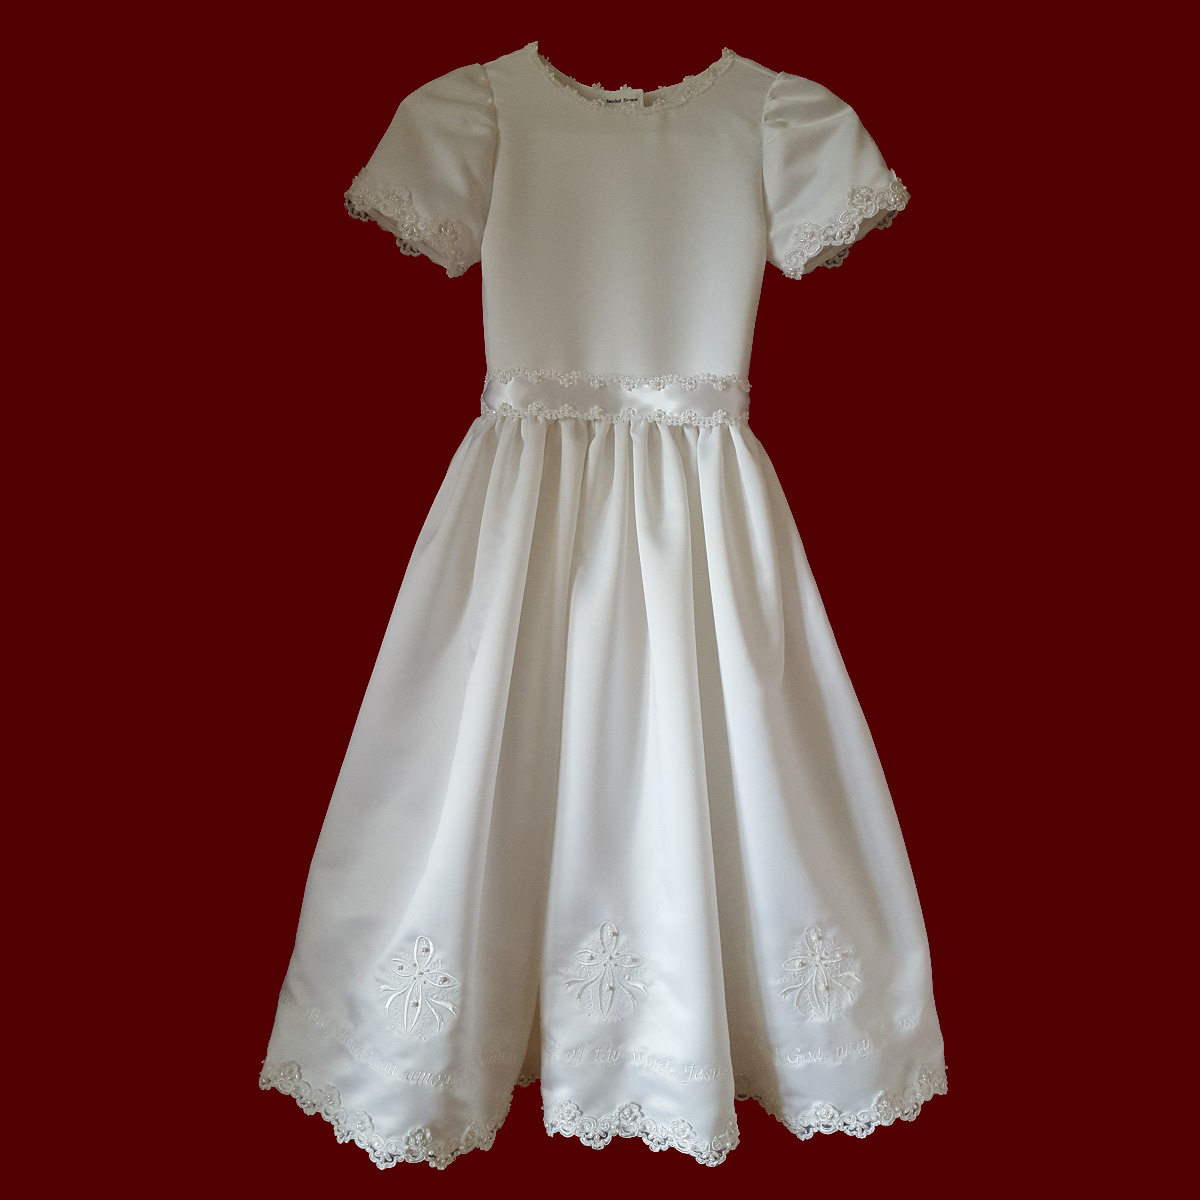 Hail Mary First Communion Dress With Crosses & Beaded Lace